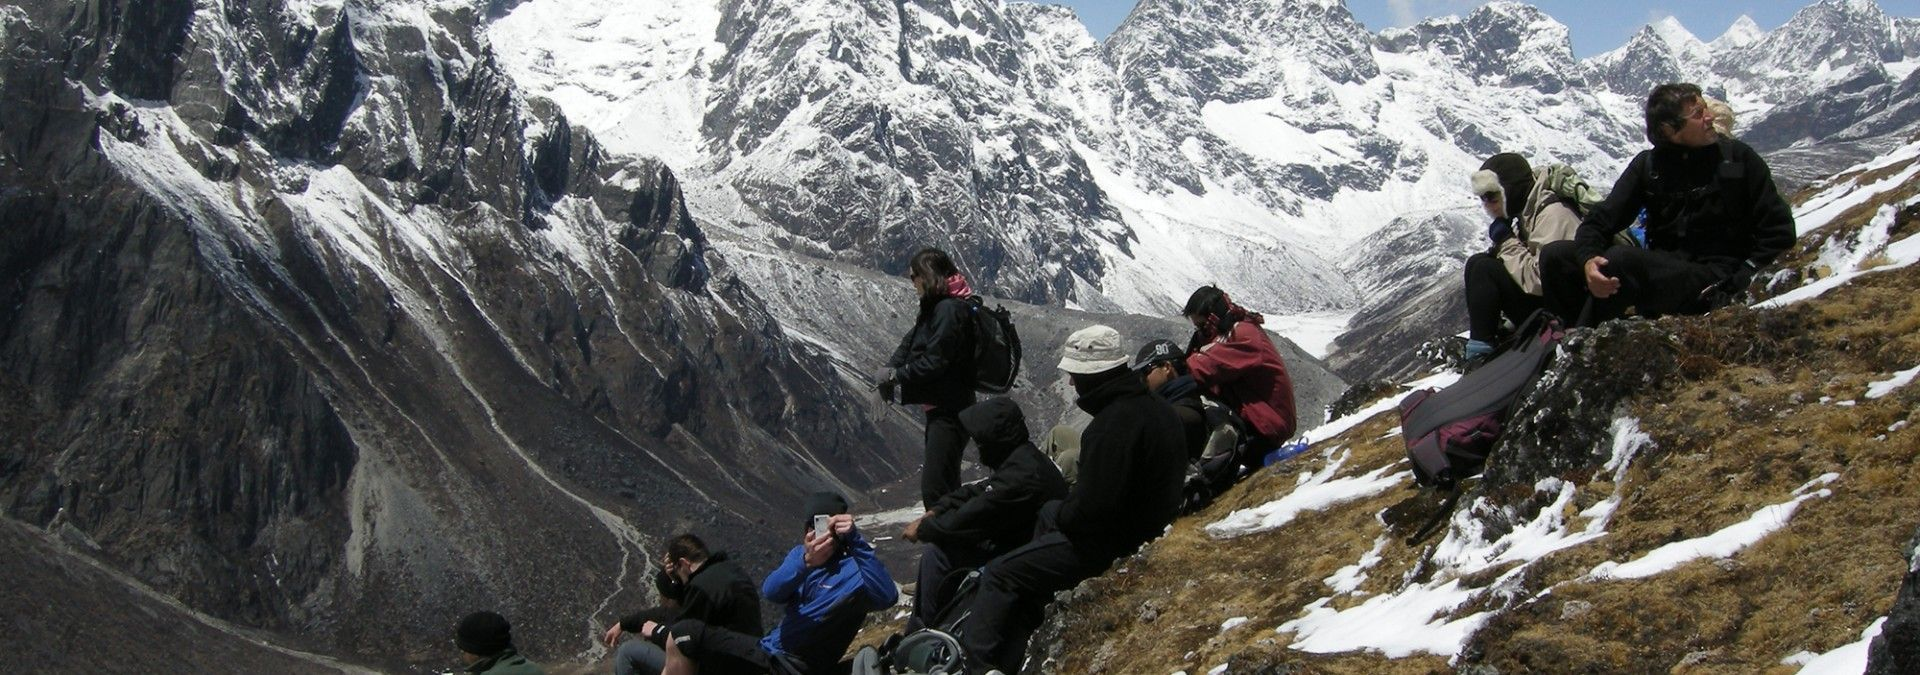 Rest_stop_on_route_Everest_Base_Camp.jpg